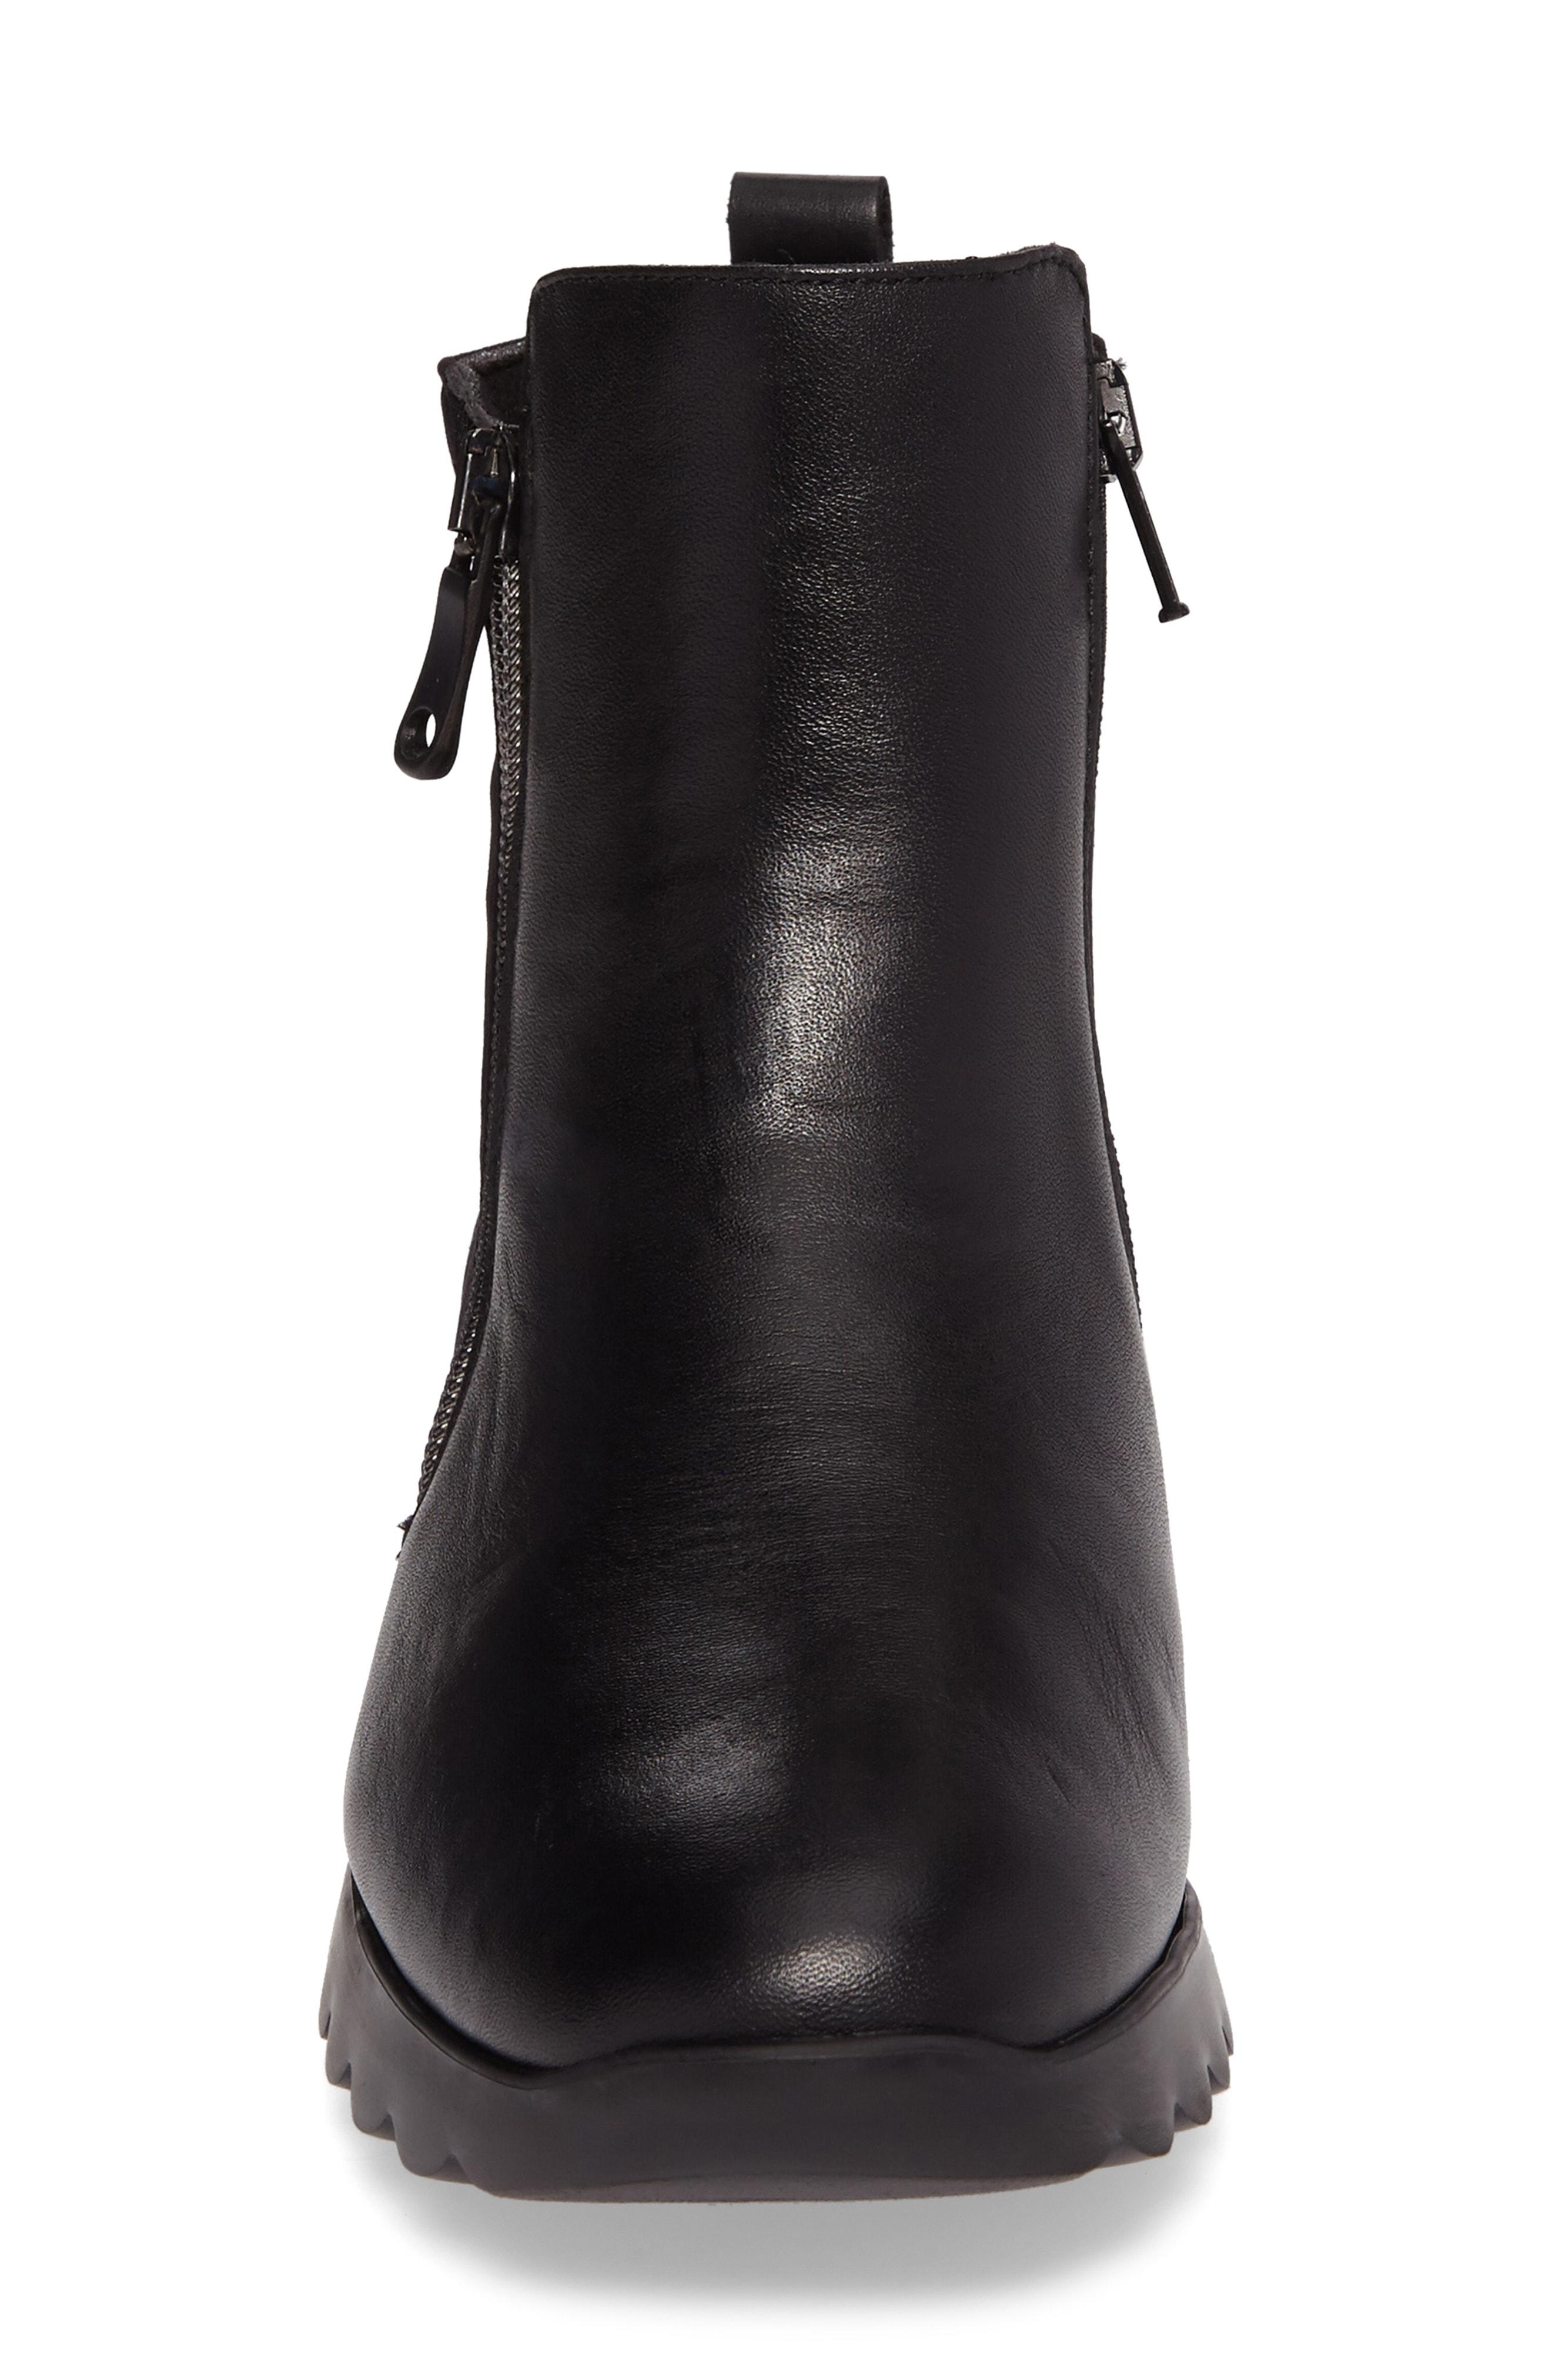 89d710867bb Munro Ashcroft Bootie In Black Leather